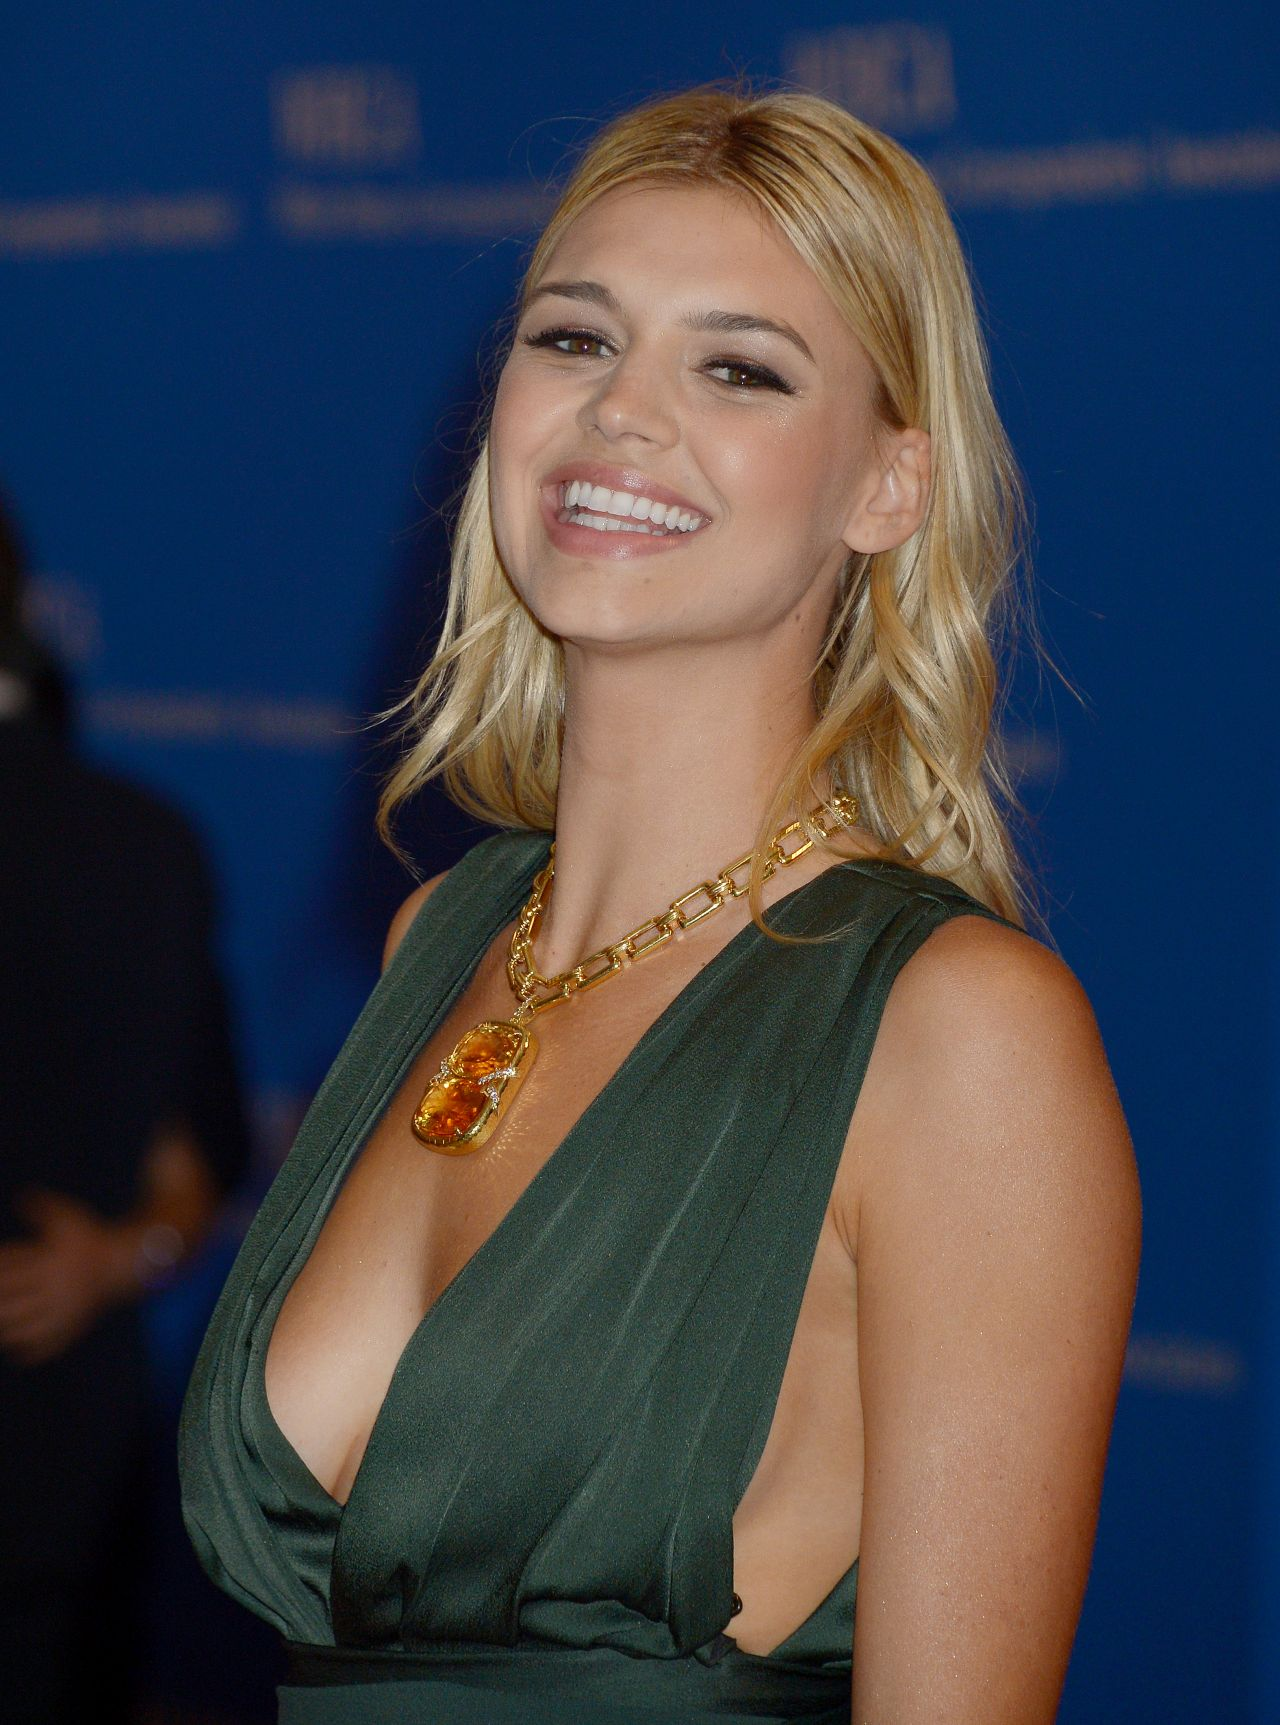 Kelly Rohrbach nude (52 photo) Gallery, YouTube, lingerie